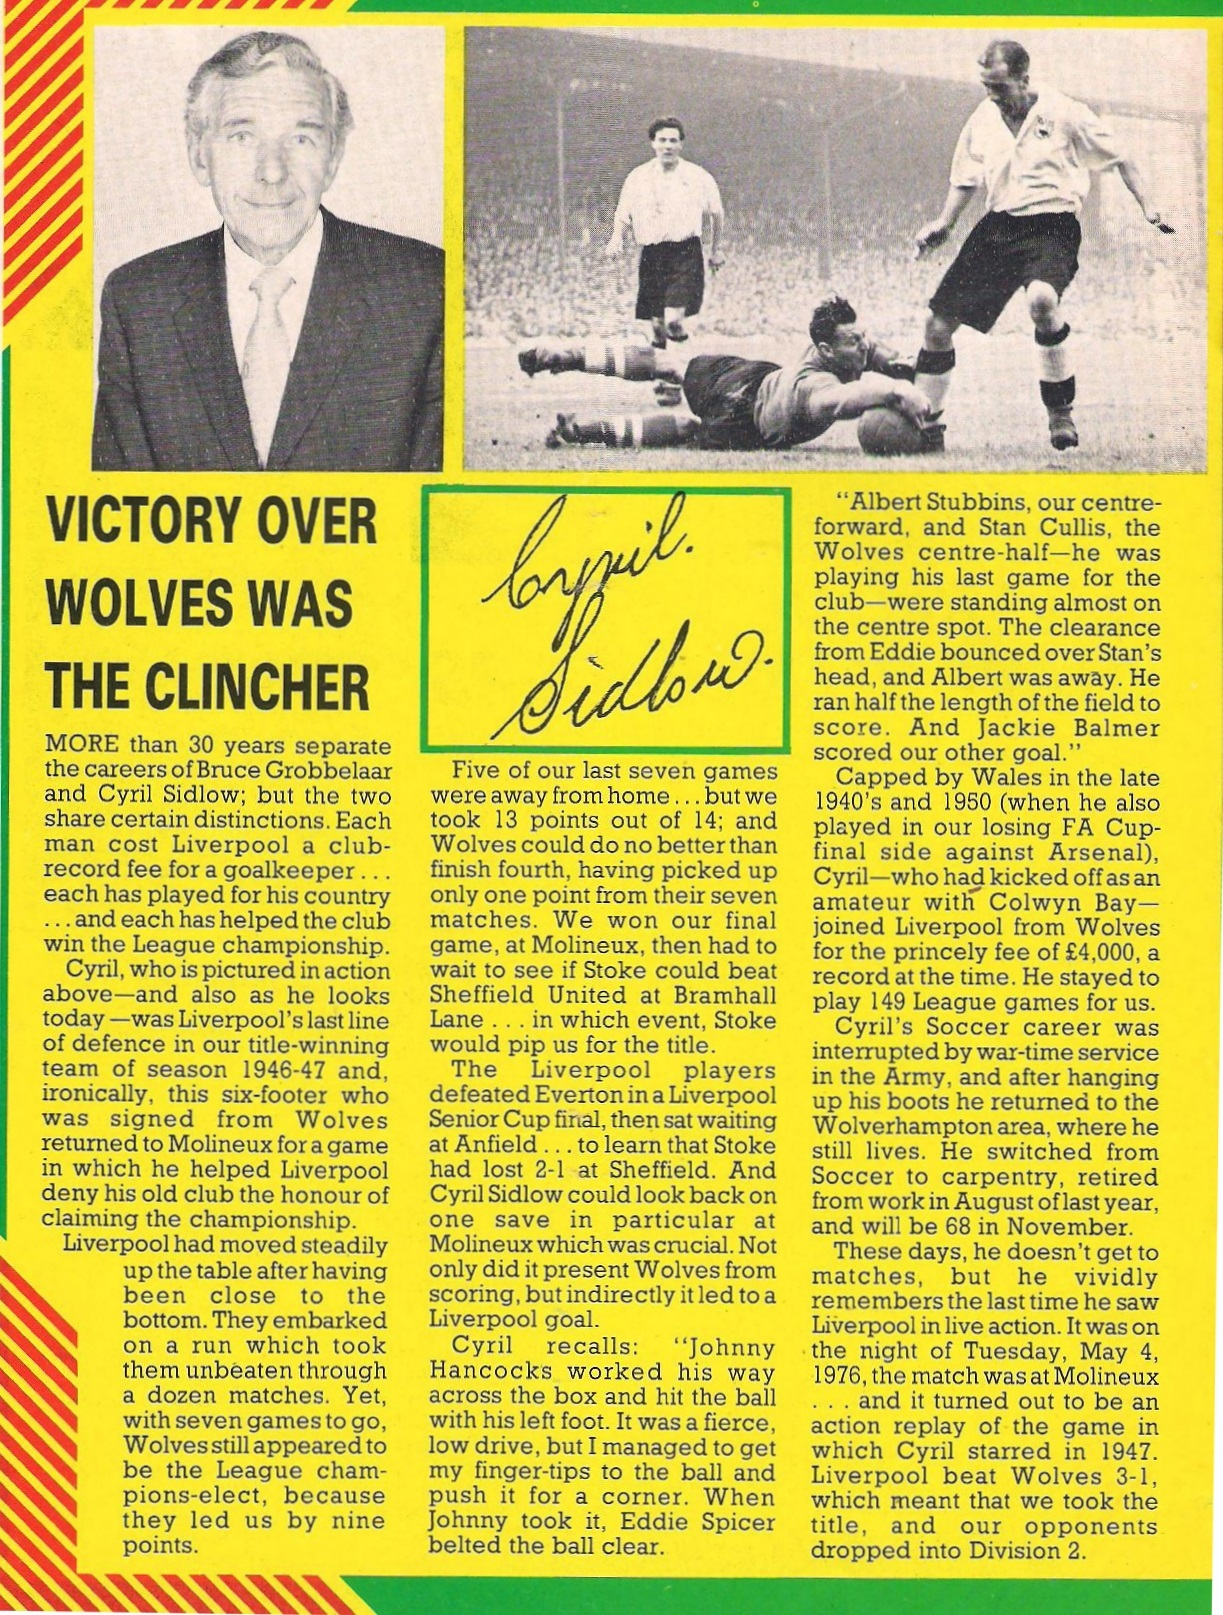 Victory over Wolves was the clincher